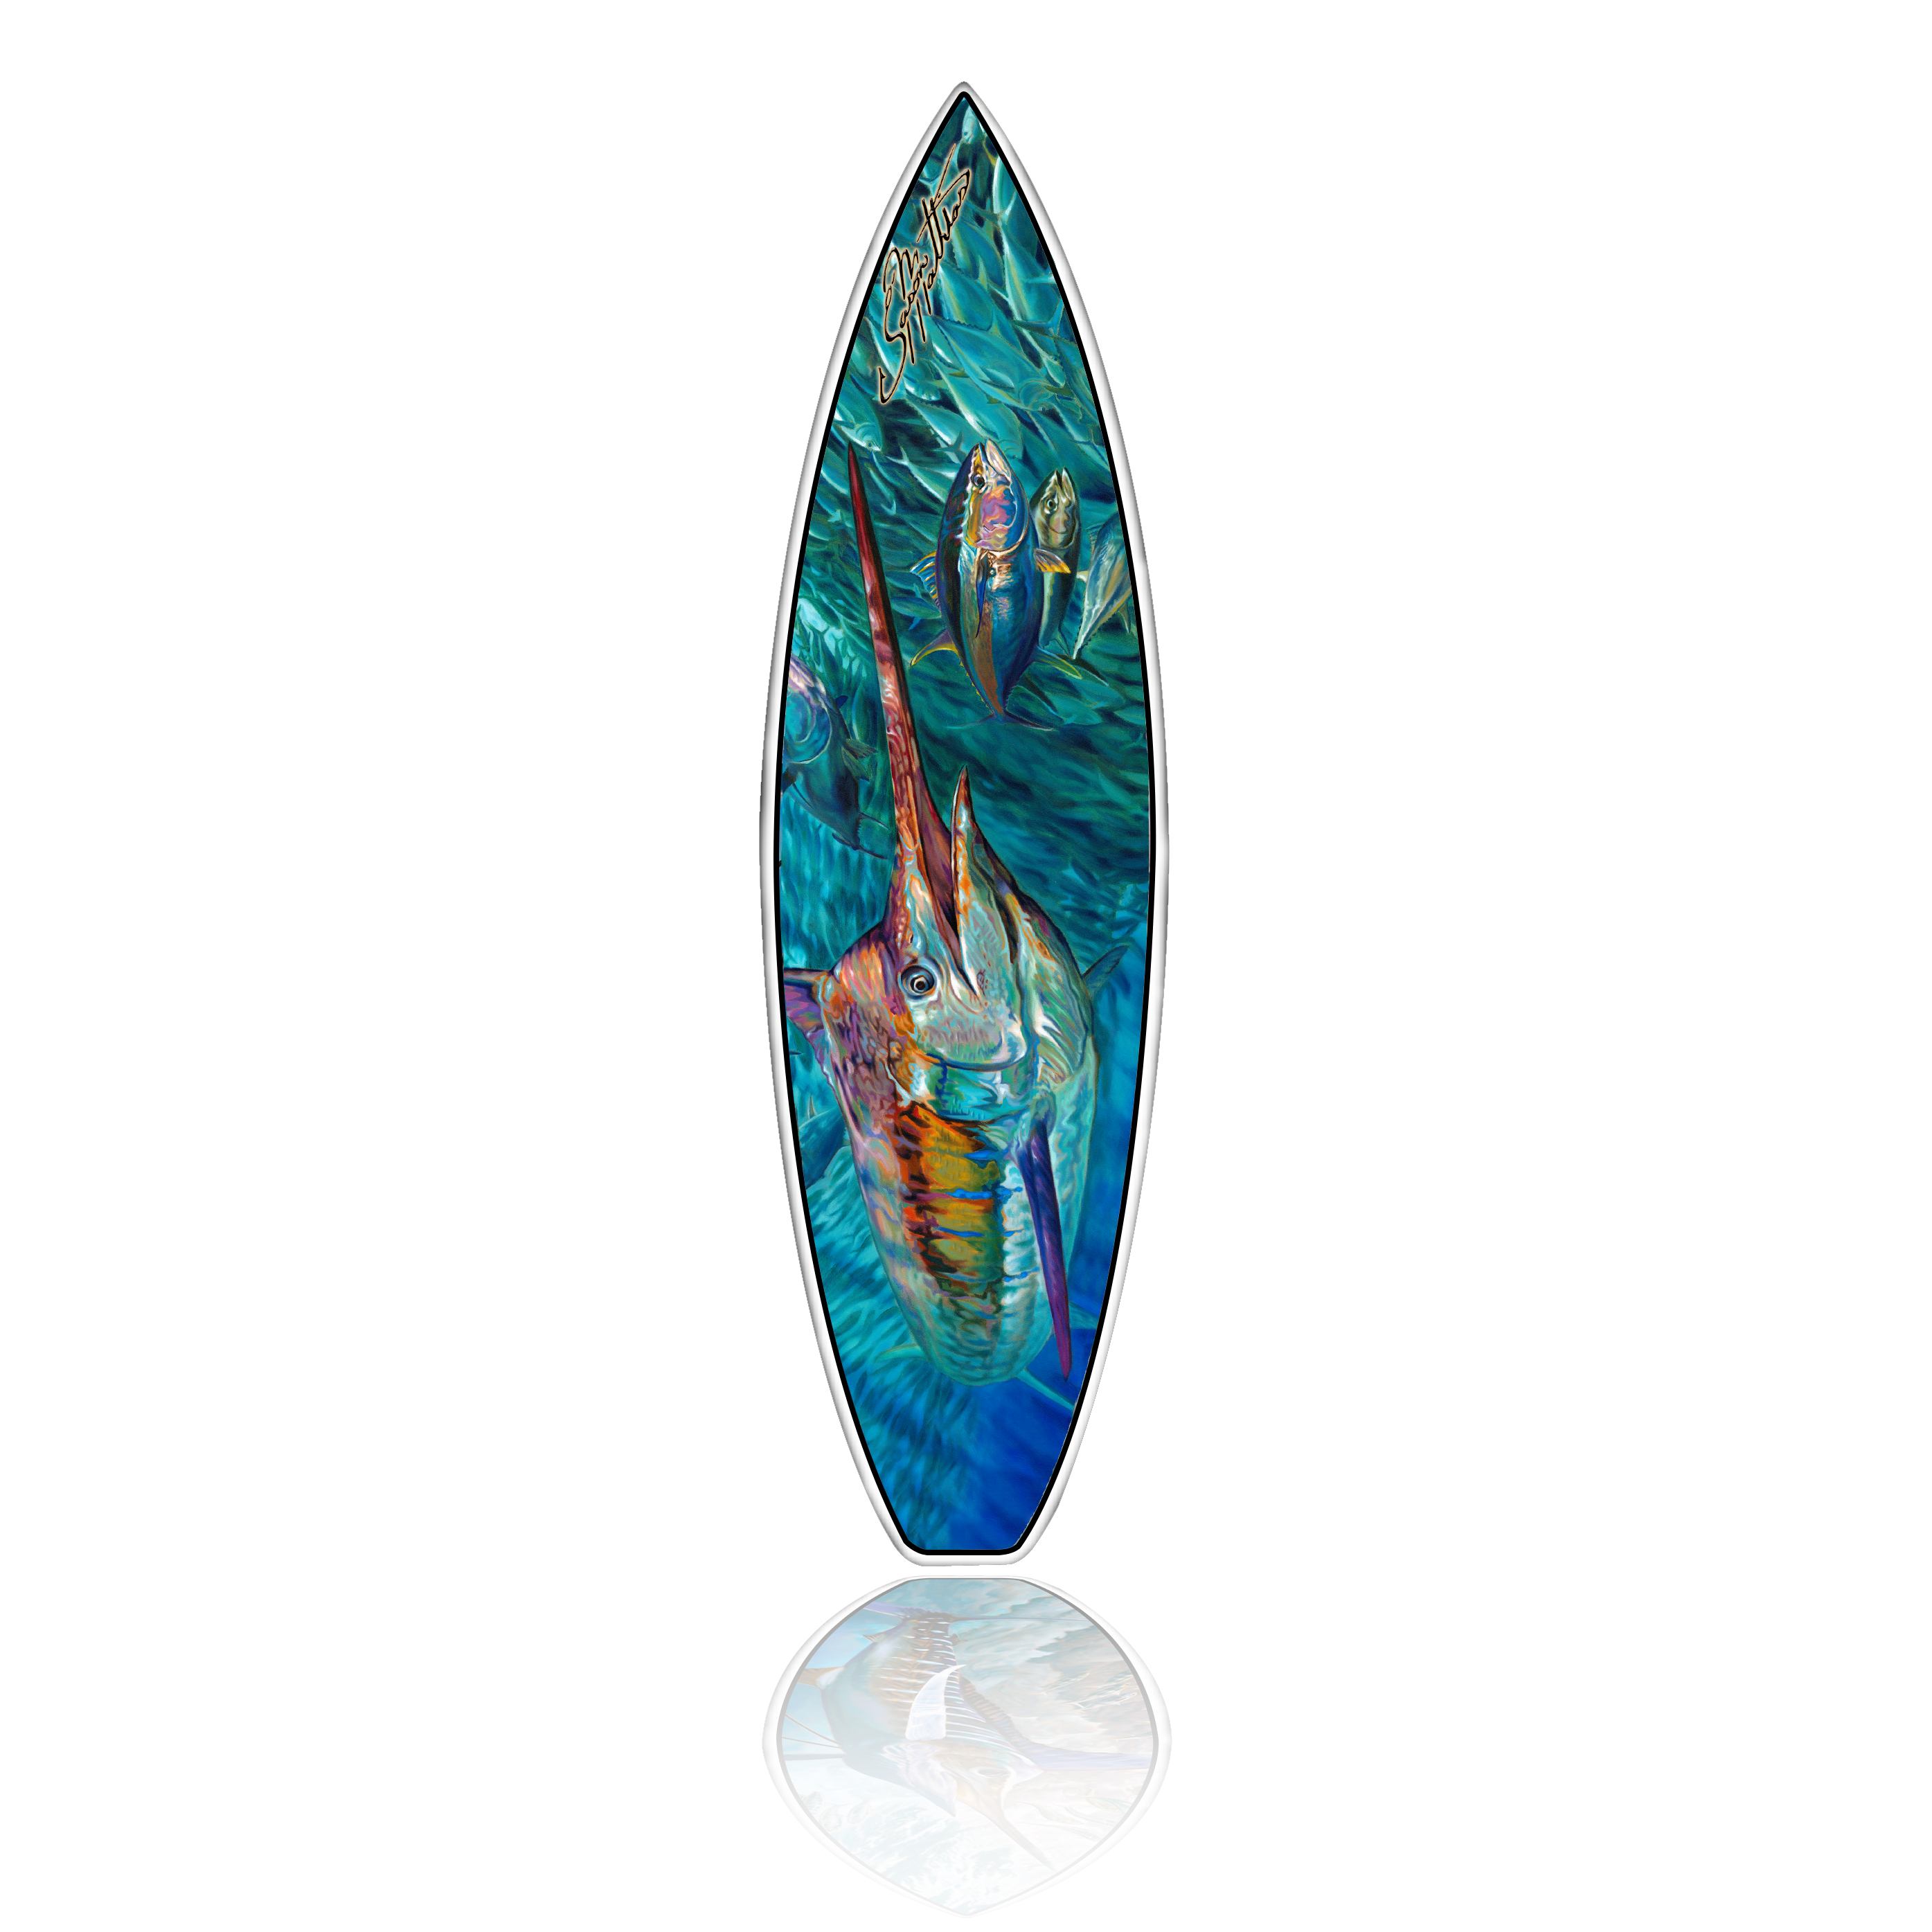 2790x2790 Surfboard Vectors, Photos And Psd Files Free Download